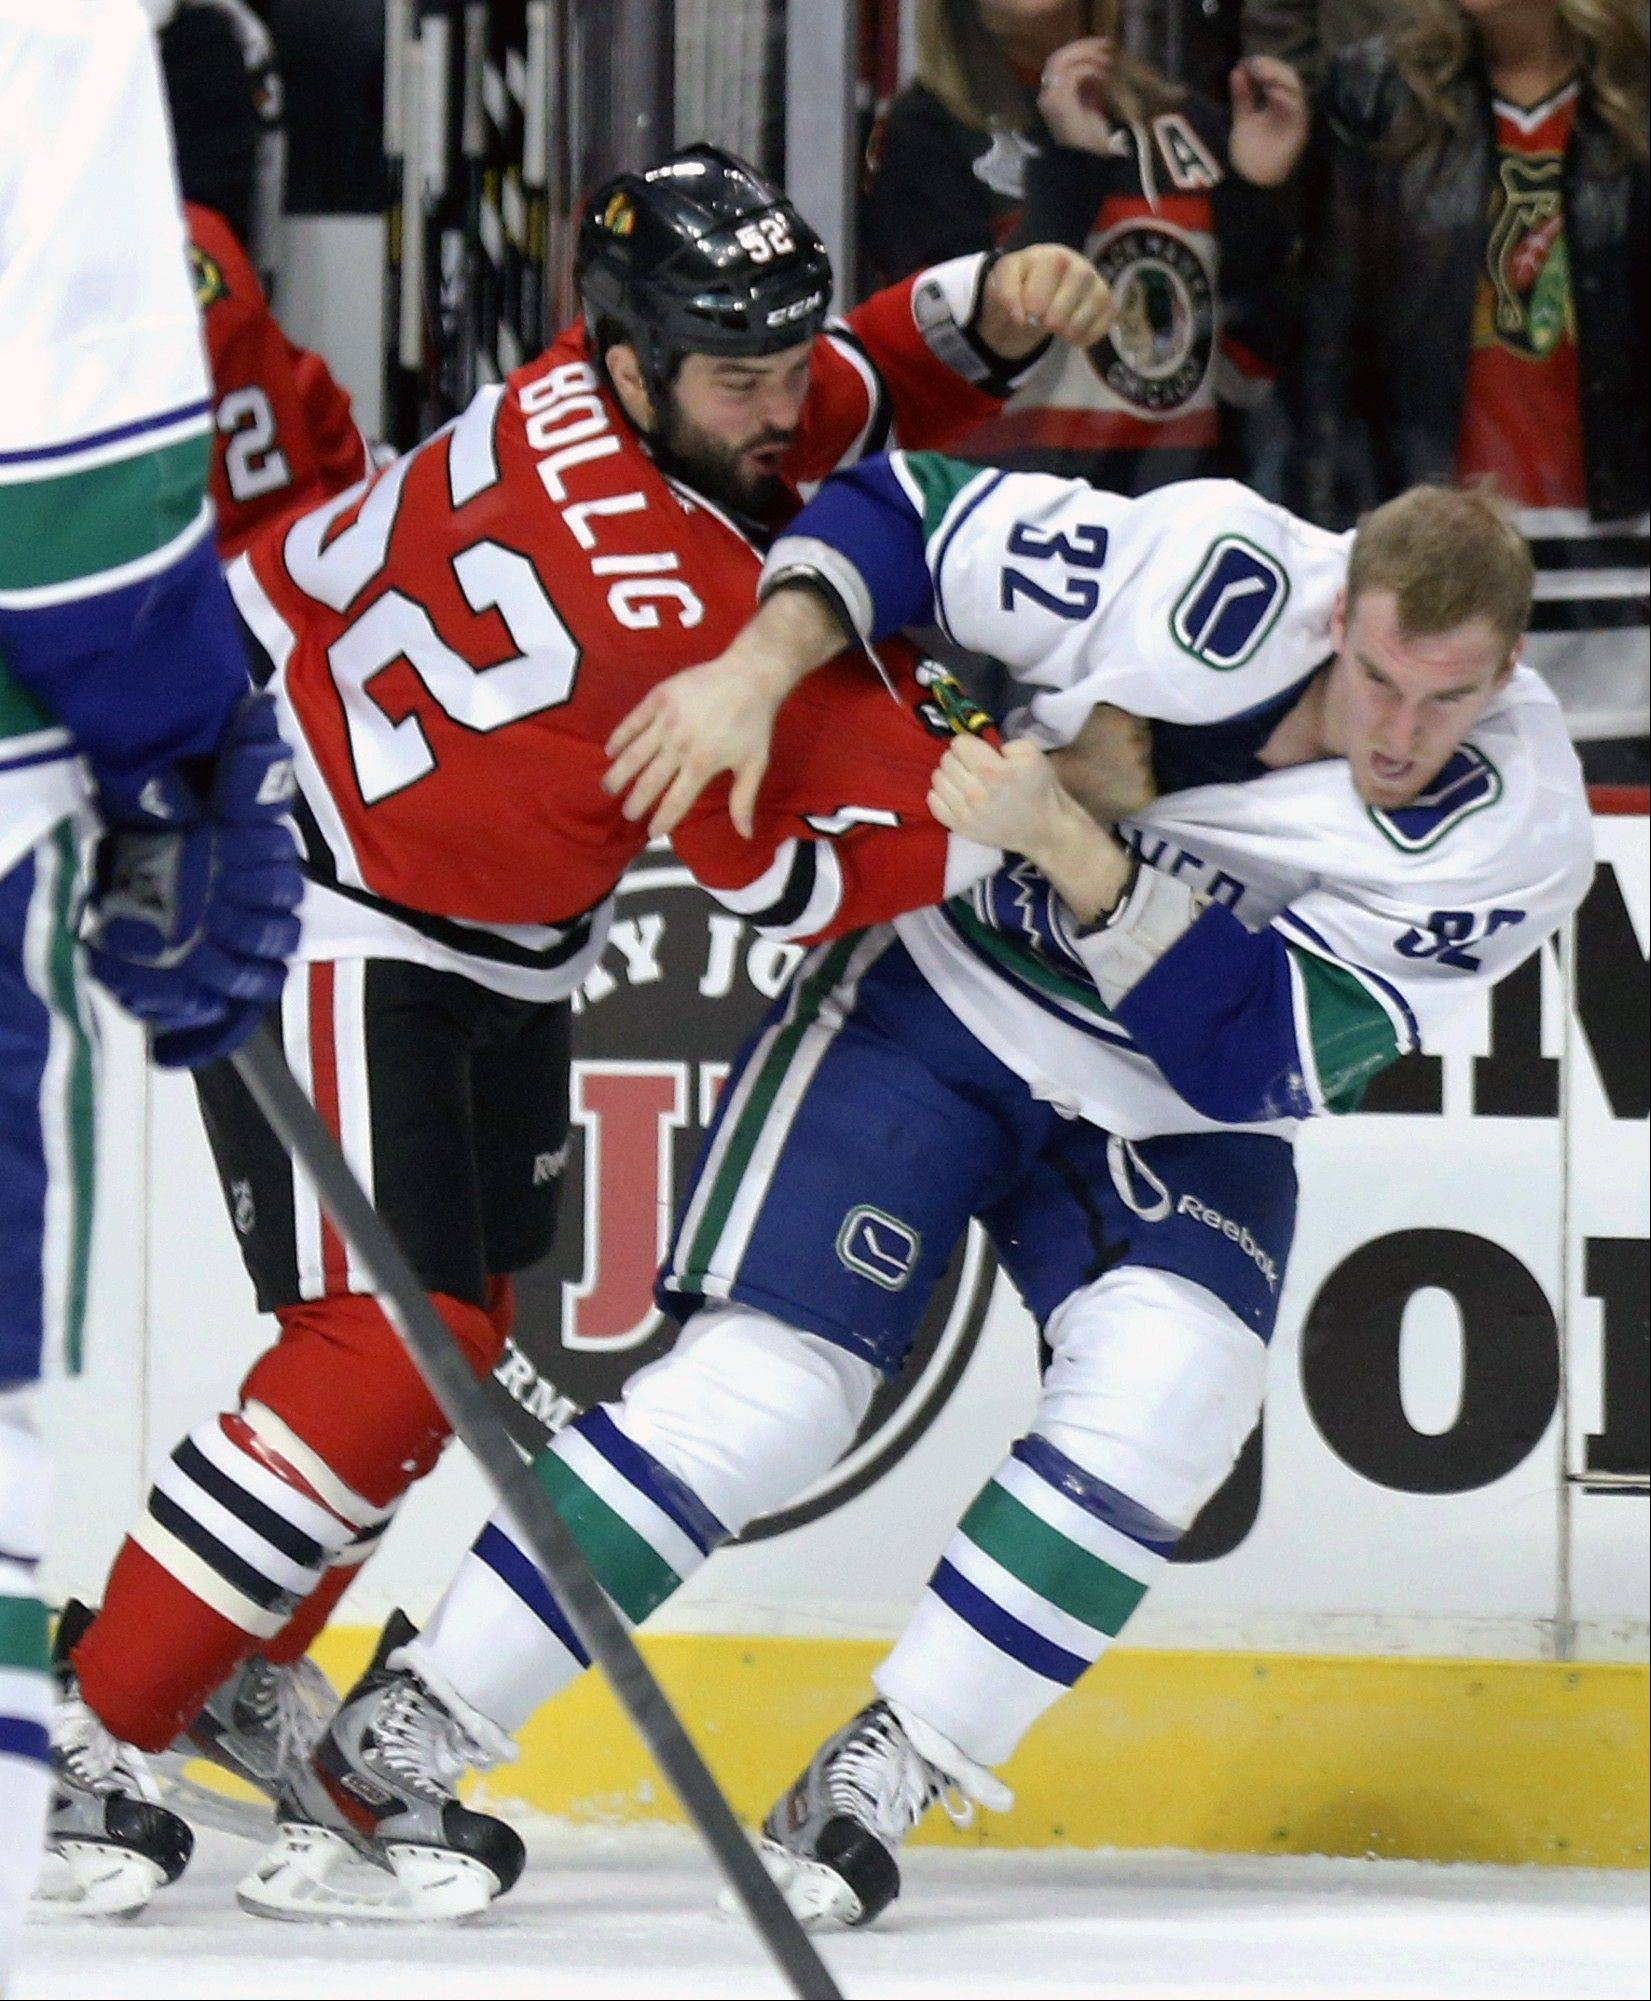 Chicago Blackhawks left wing Brandon Bollig fights Vancouver Canucks right wing Dale Weise during the first period.